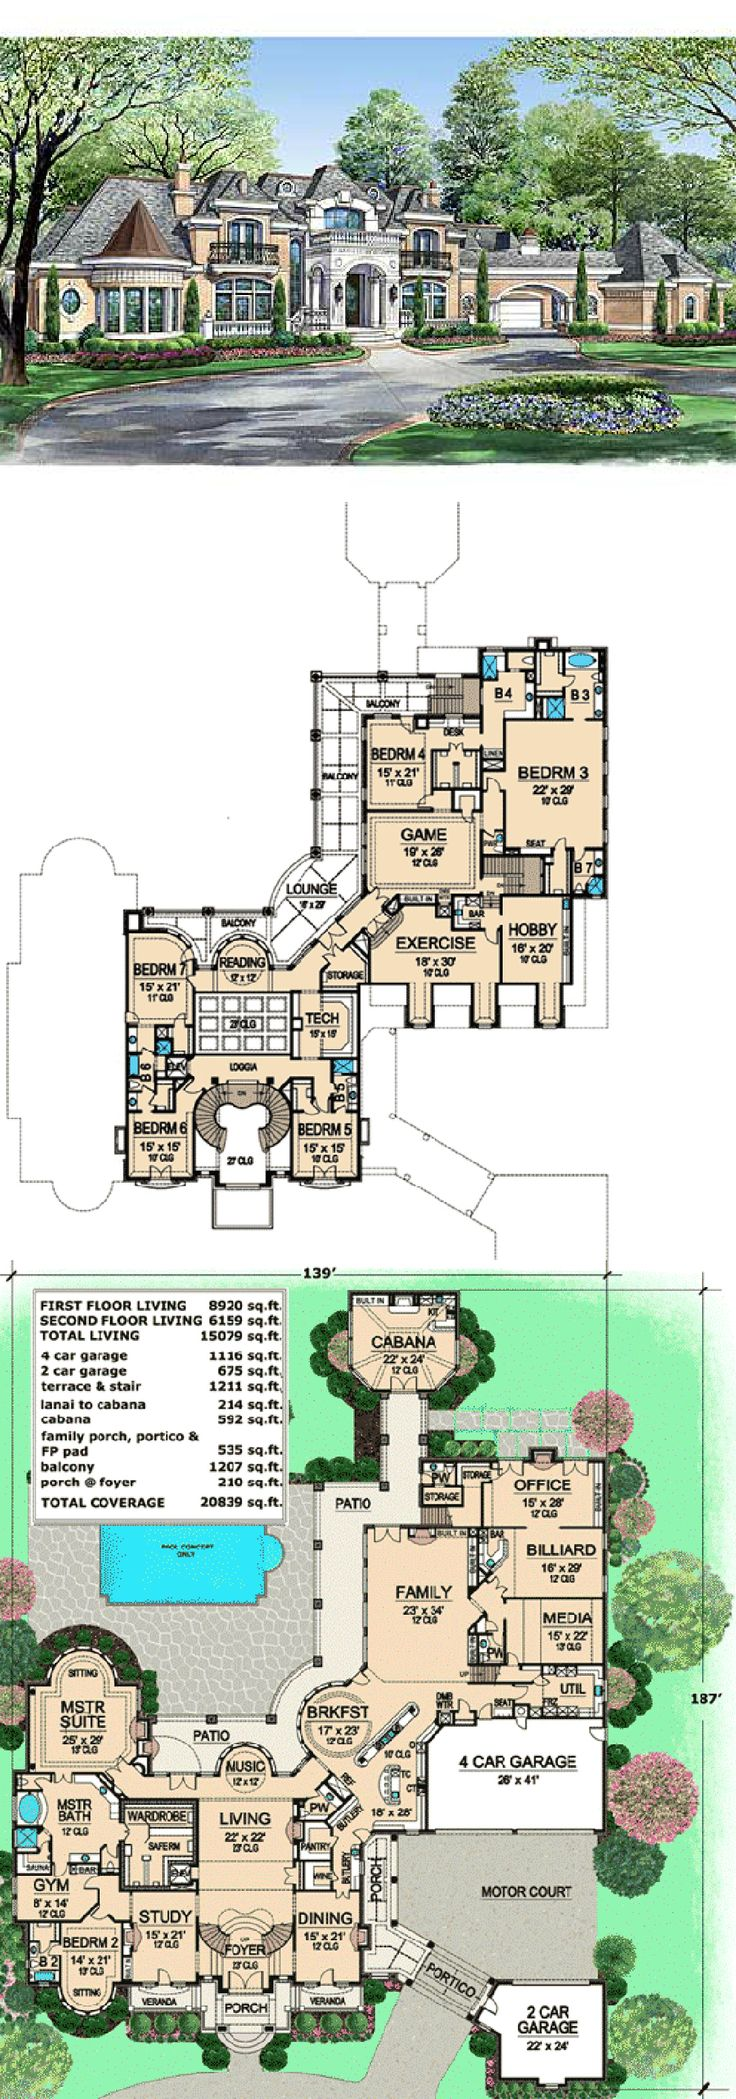 best 25 mansion floor plans ideas on pinterest victorian house 2 rj 2 15m mansion 10hec of r and j at ligao